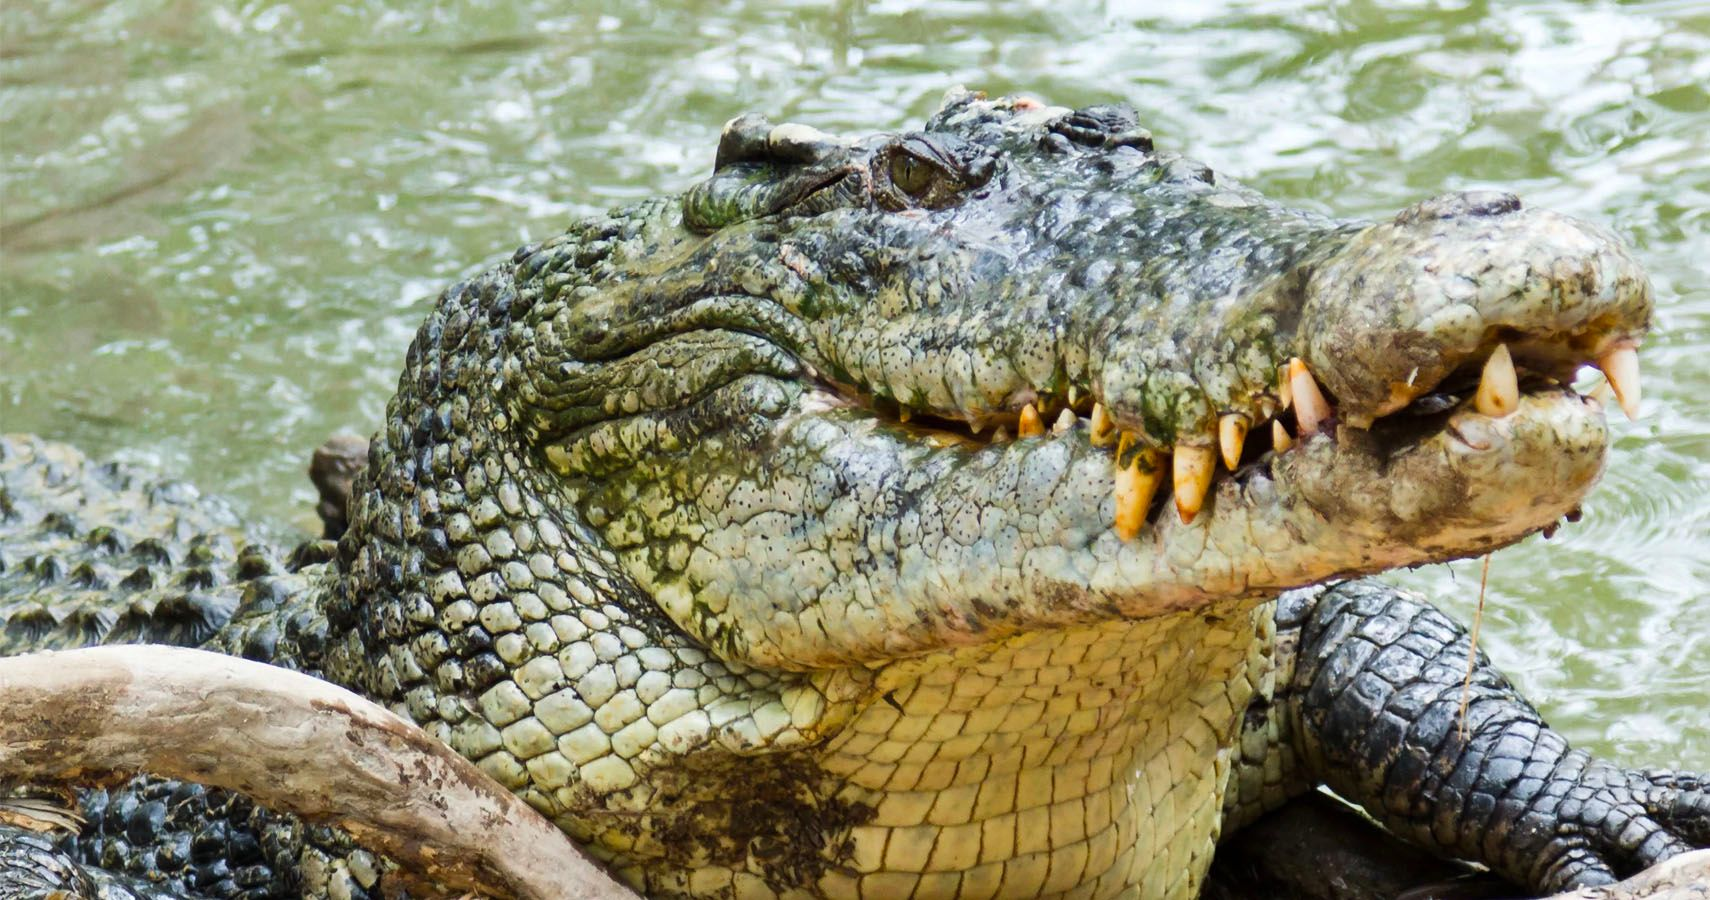 Crocodile attack video